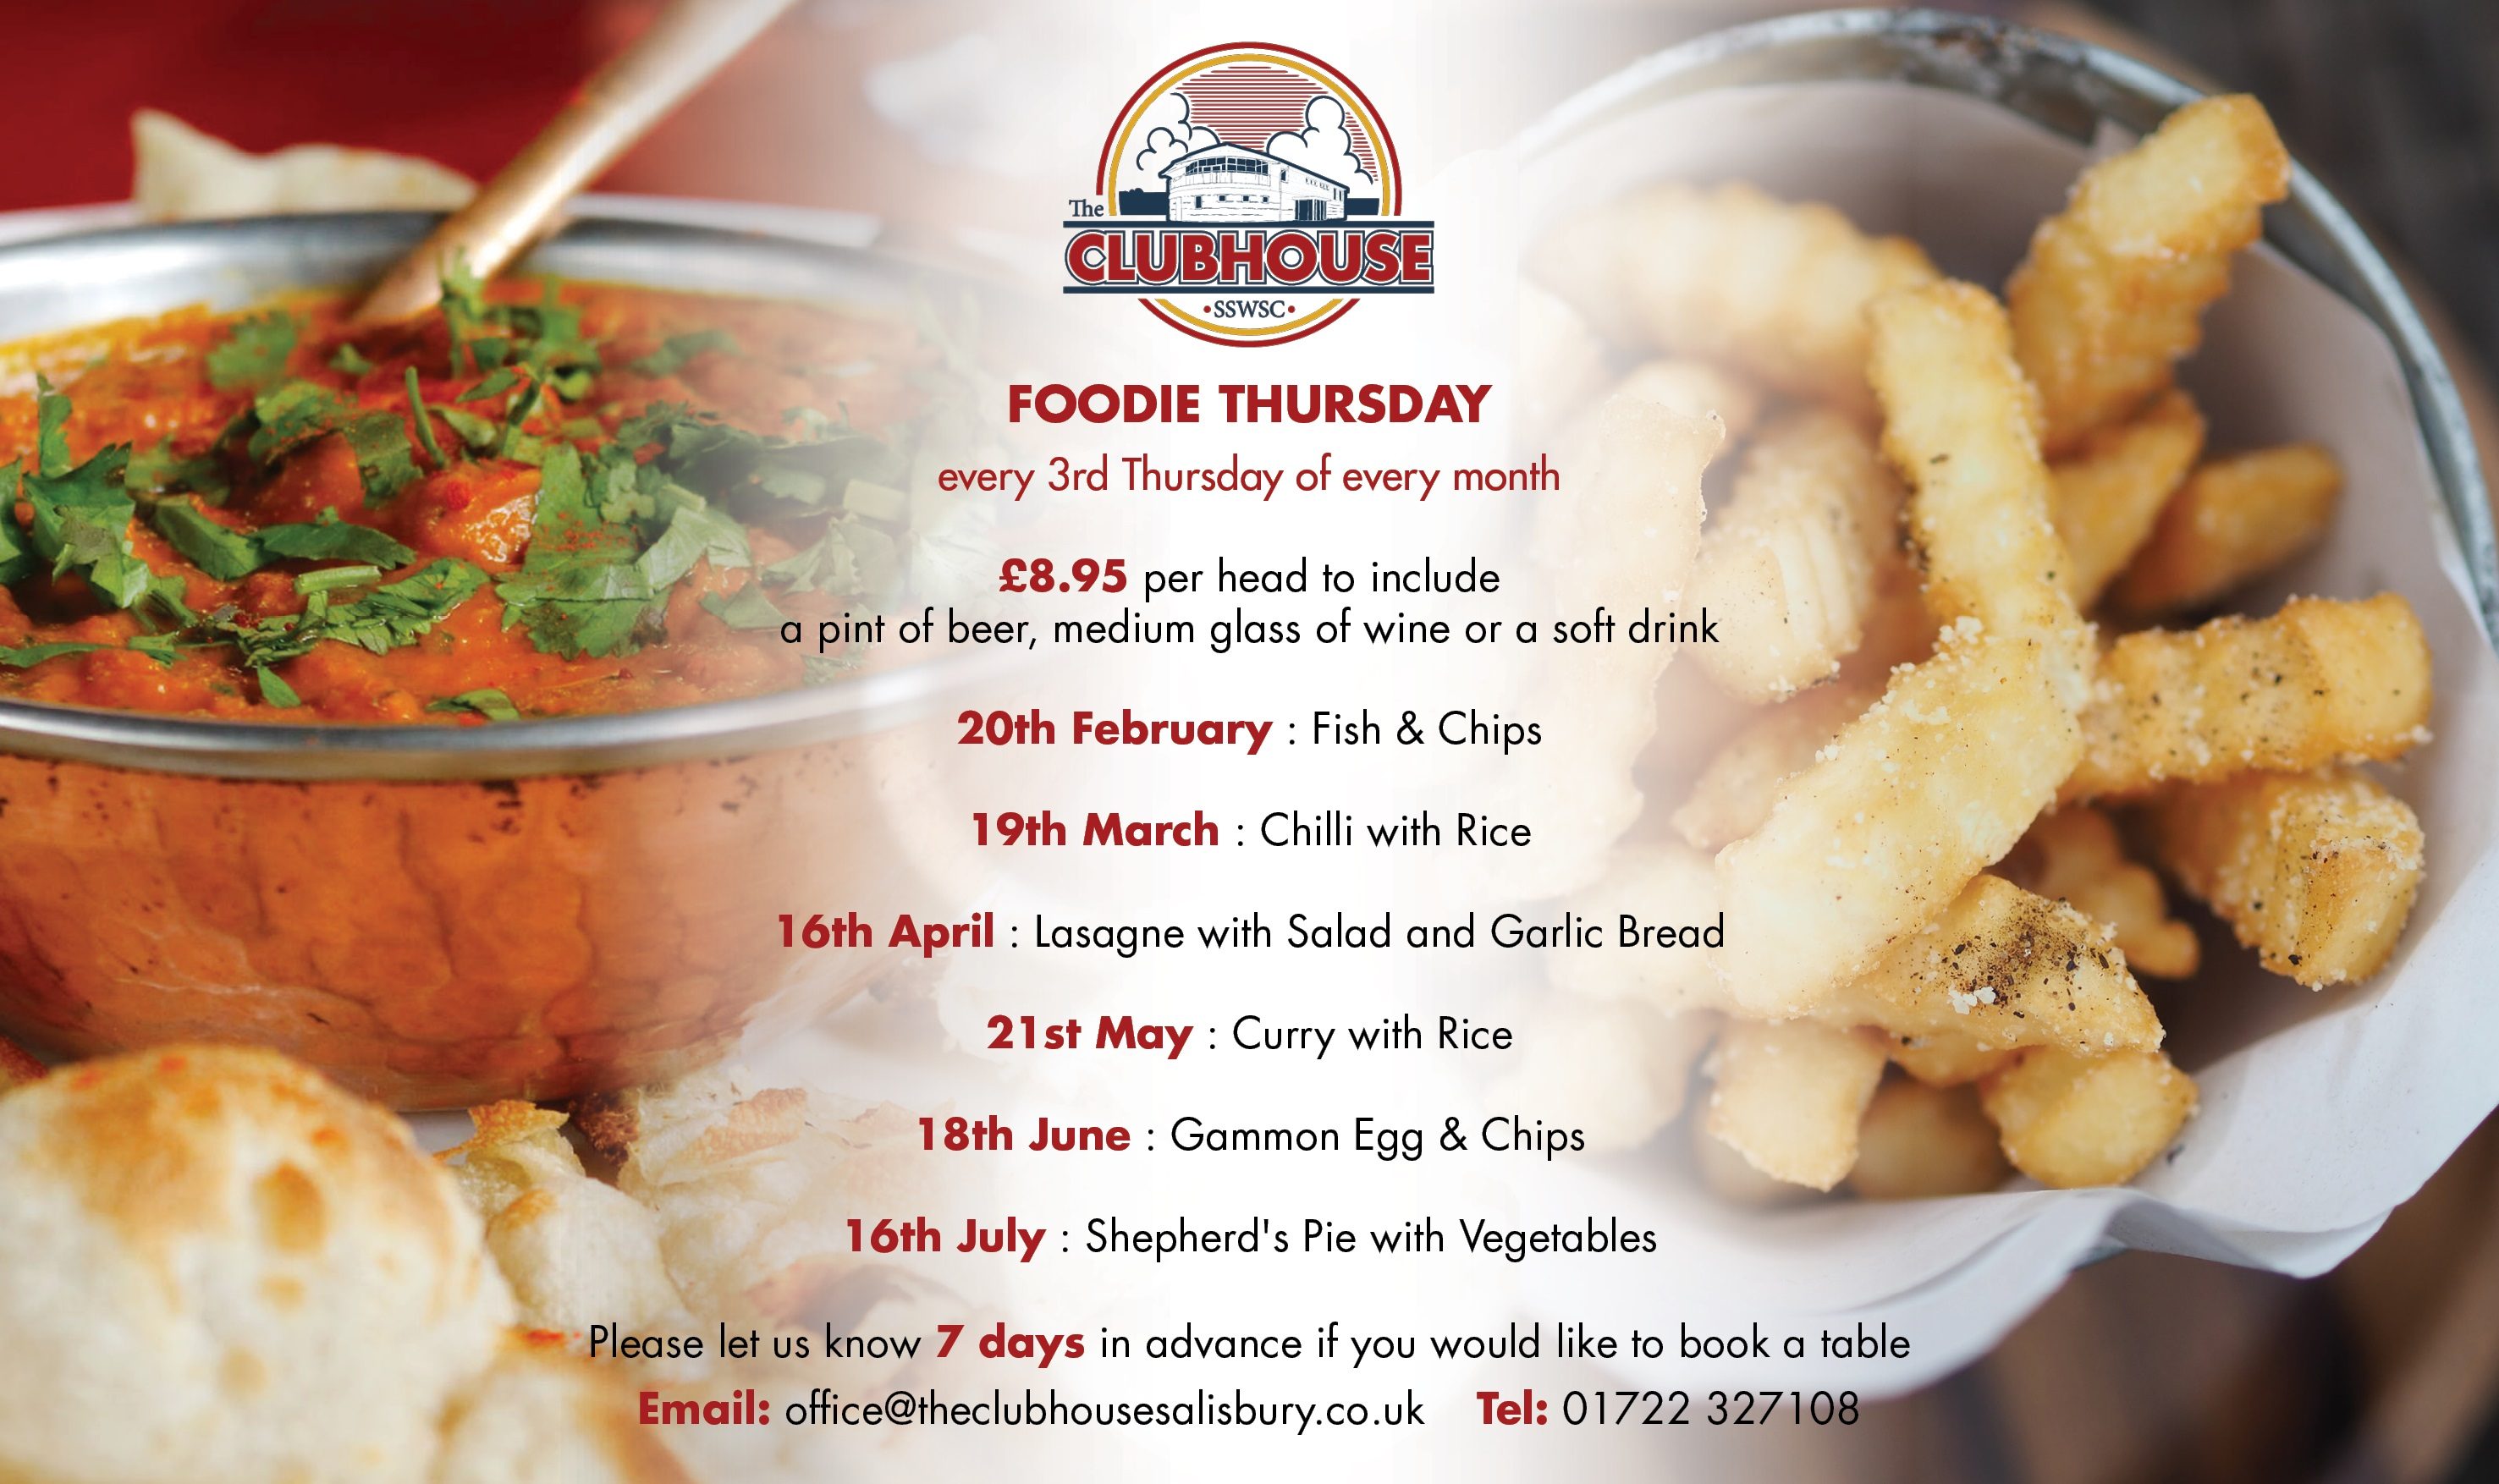 Foodie Thursday 6:30 - 8:00 @ The Parker Bullen Bar The Clubhouse Salisbury